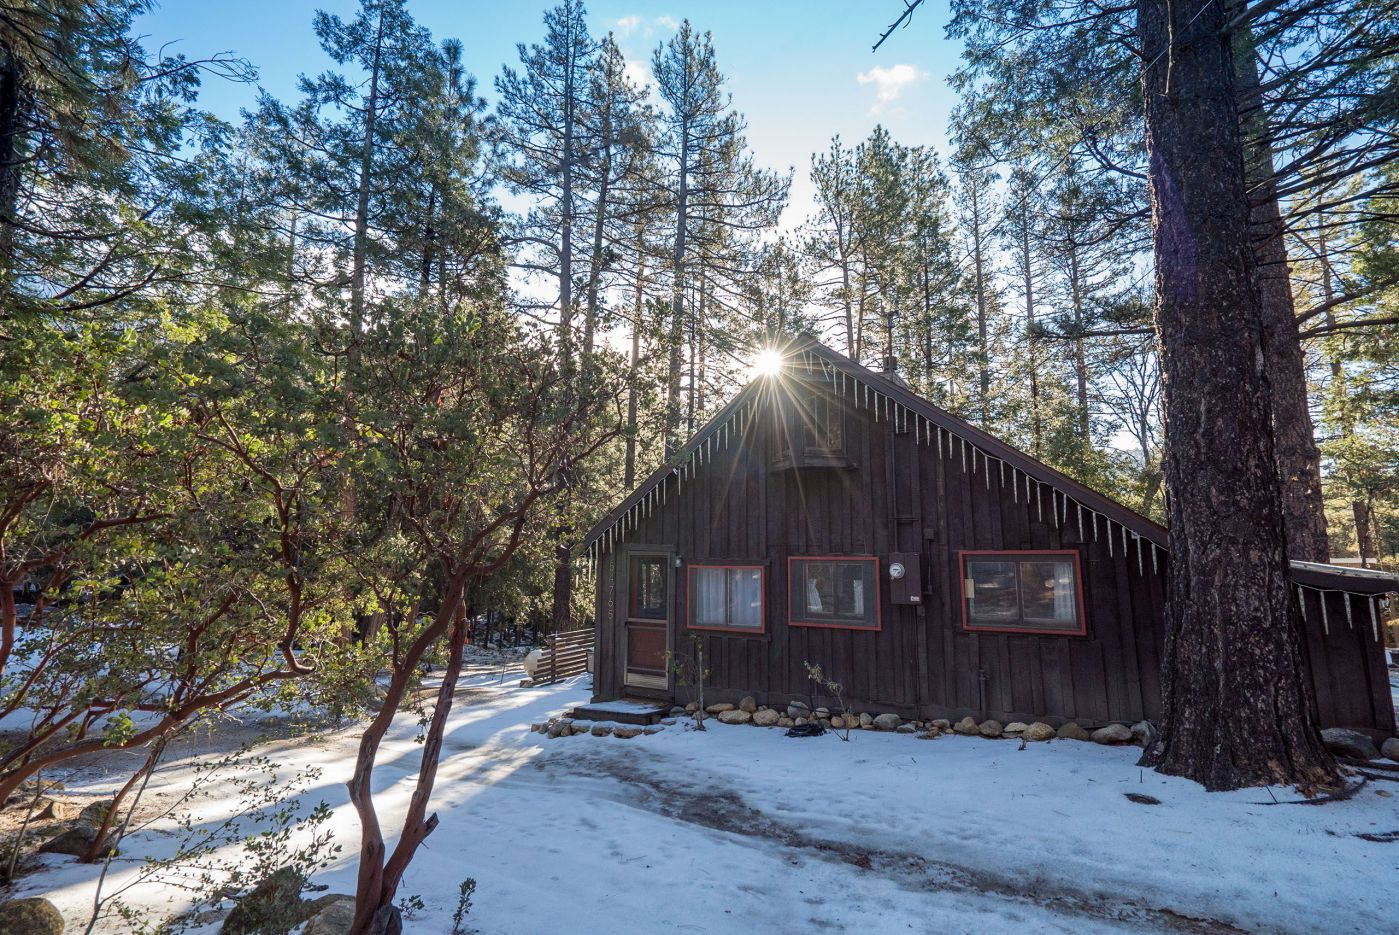 This lovely cottage is located just a walk away from Strawberry Creek, the principal watercourse running through the city of ...